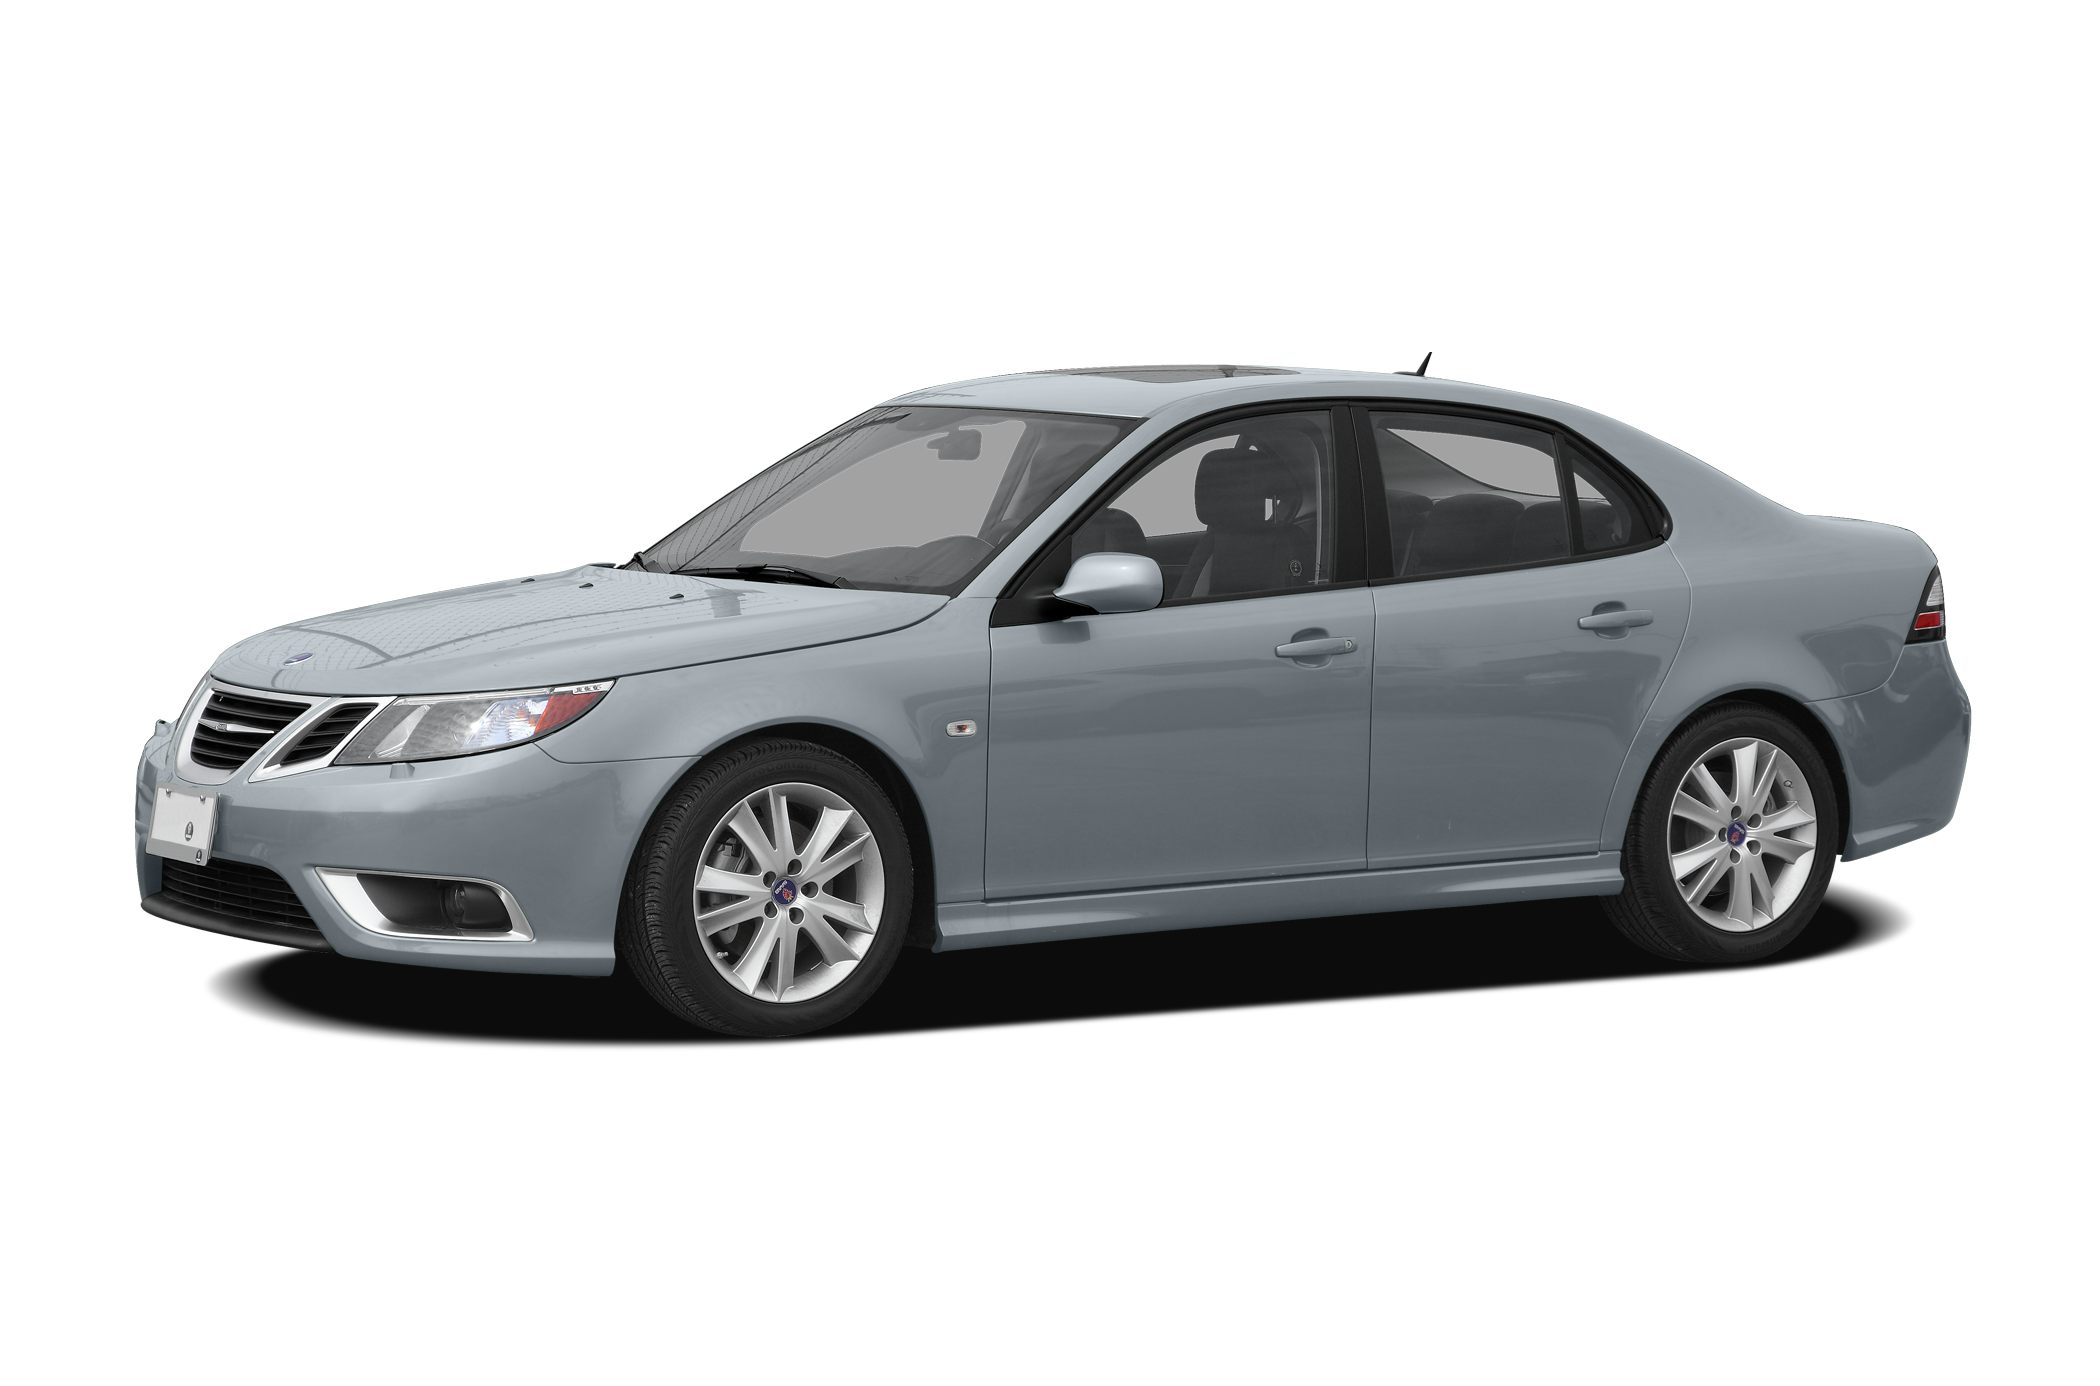 2008 Saab 9-3 20T At Mullinax there are NO DEALER FEES That SAVES you 800 over our largest comp